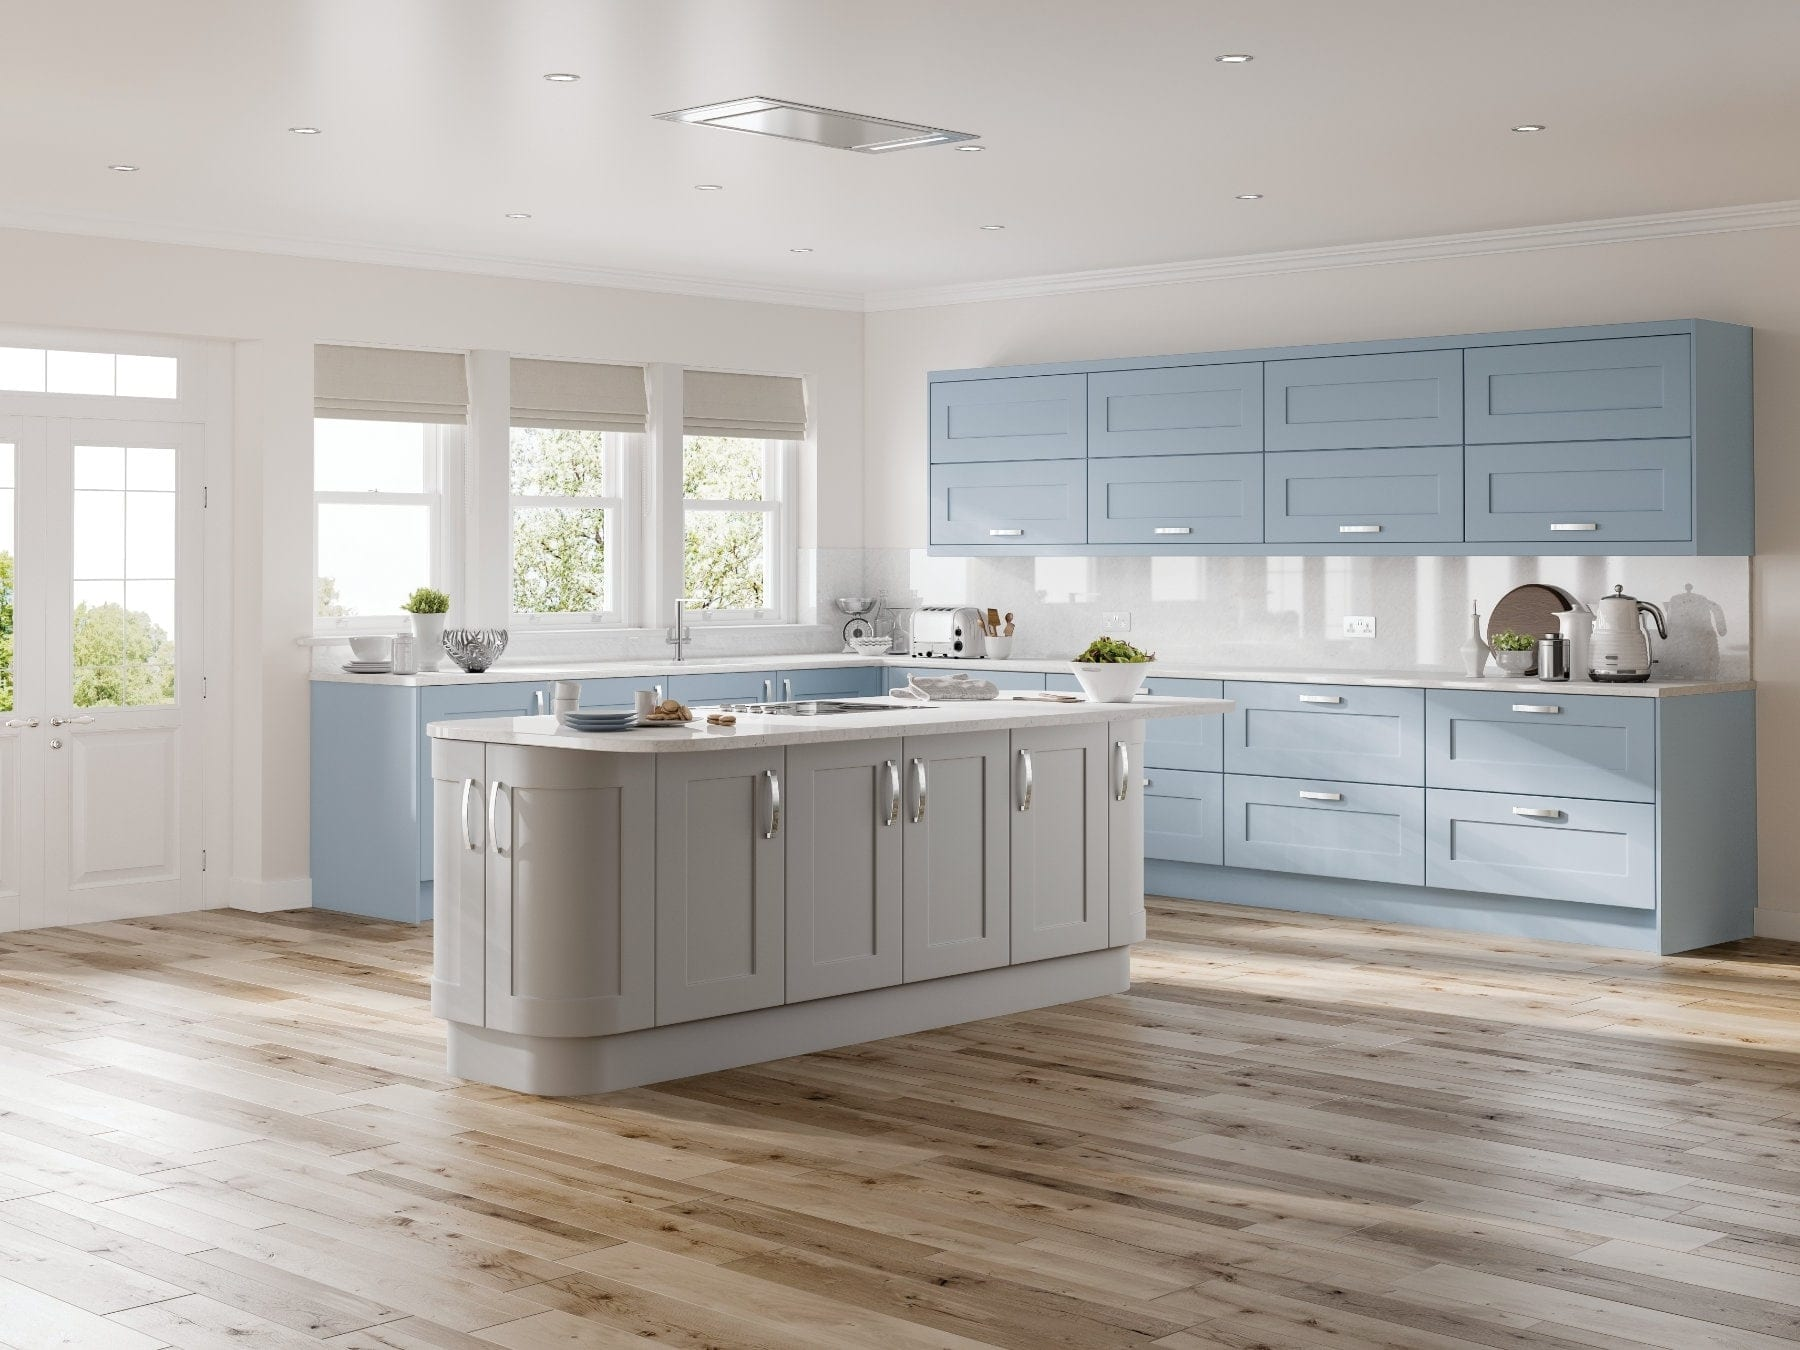 Jjo Solent Denim Blue And Grey Mist L-Shaped Kitchen With Island | Right Choice Kitchens, South Wales